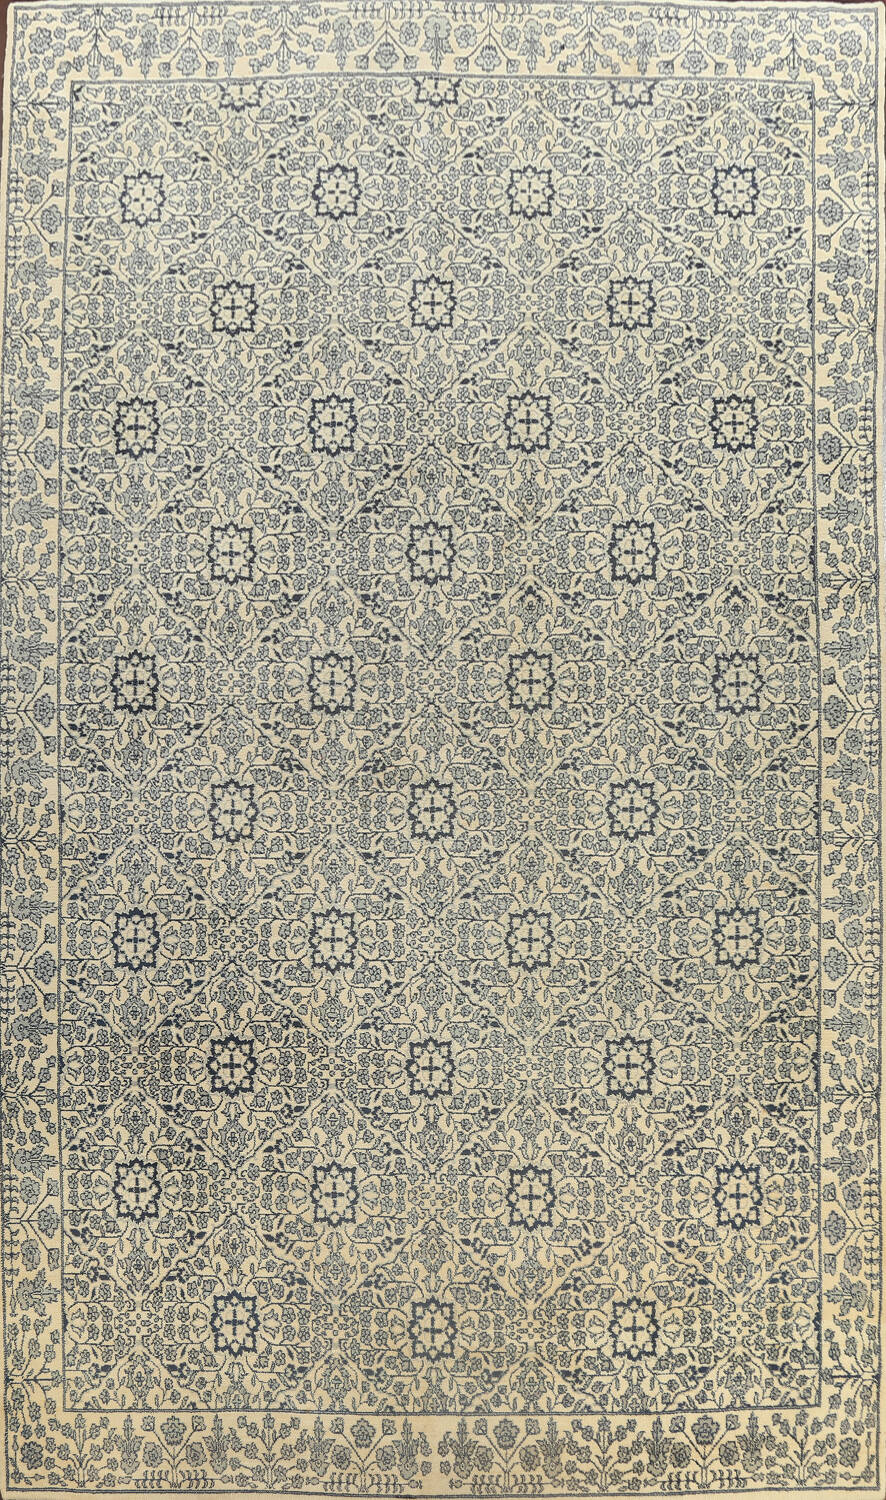 Large All-Over Oushak Oriental Area Rug 11x15 image 1